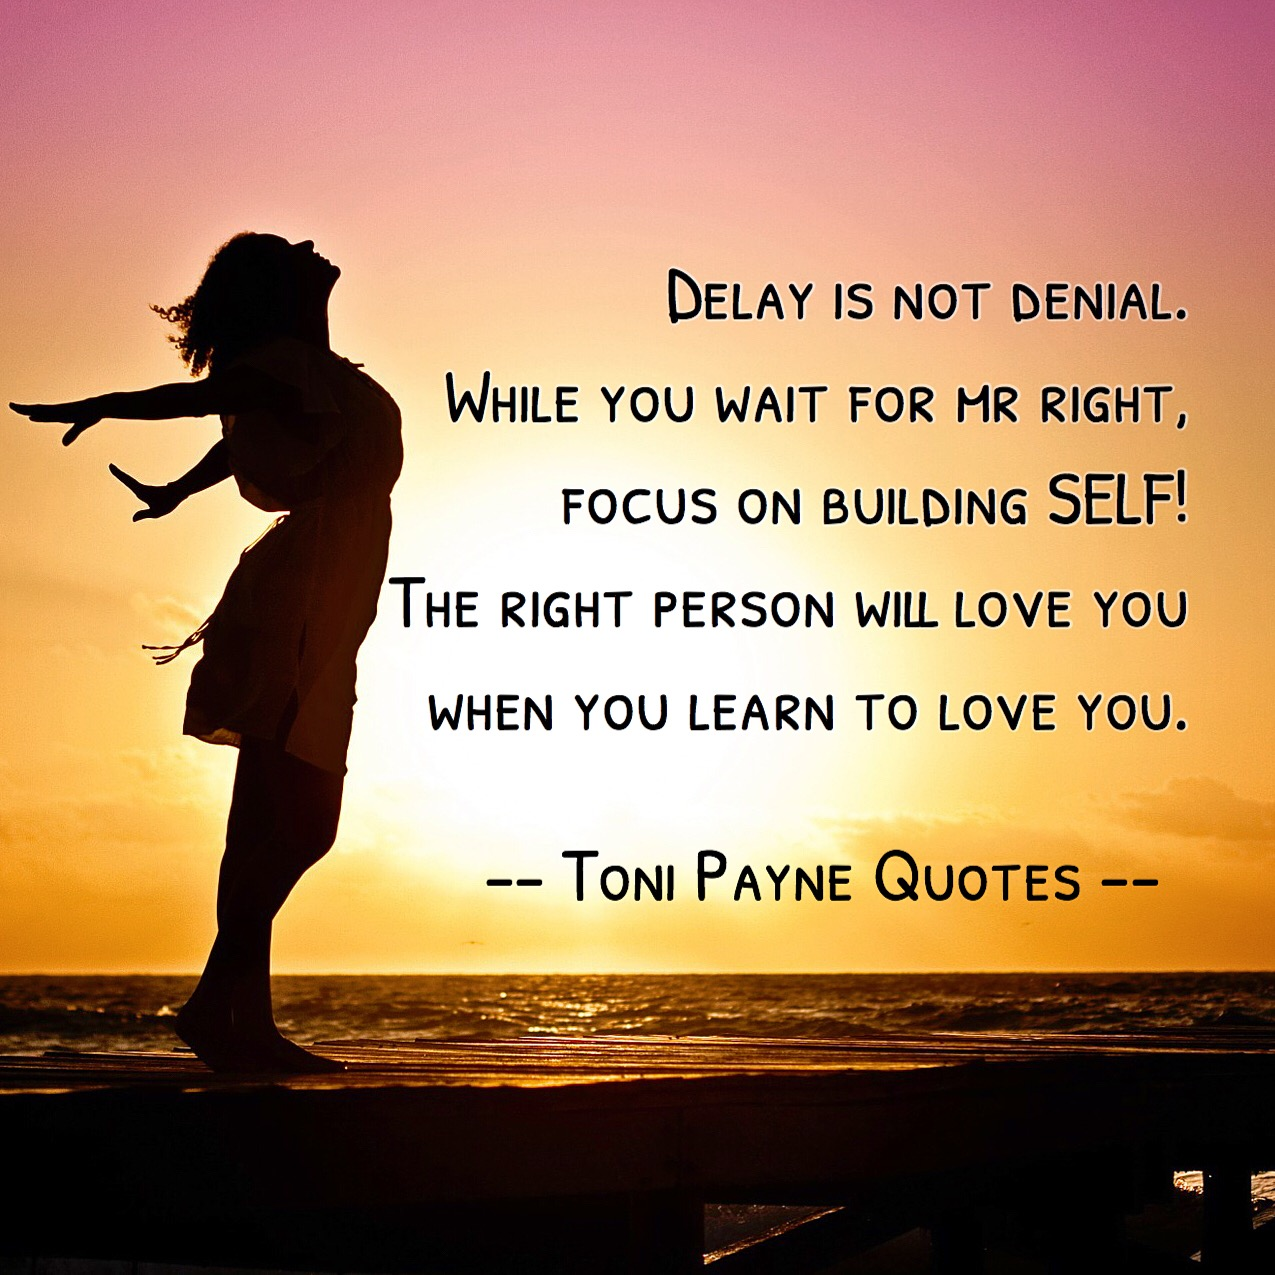 quote about waiting for mr right